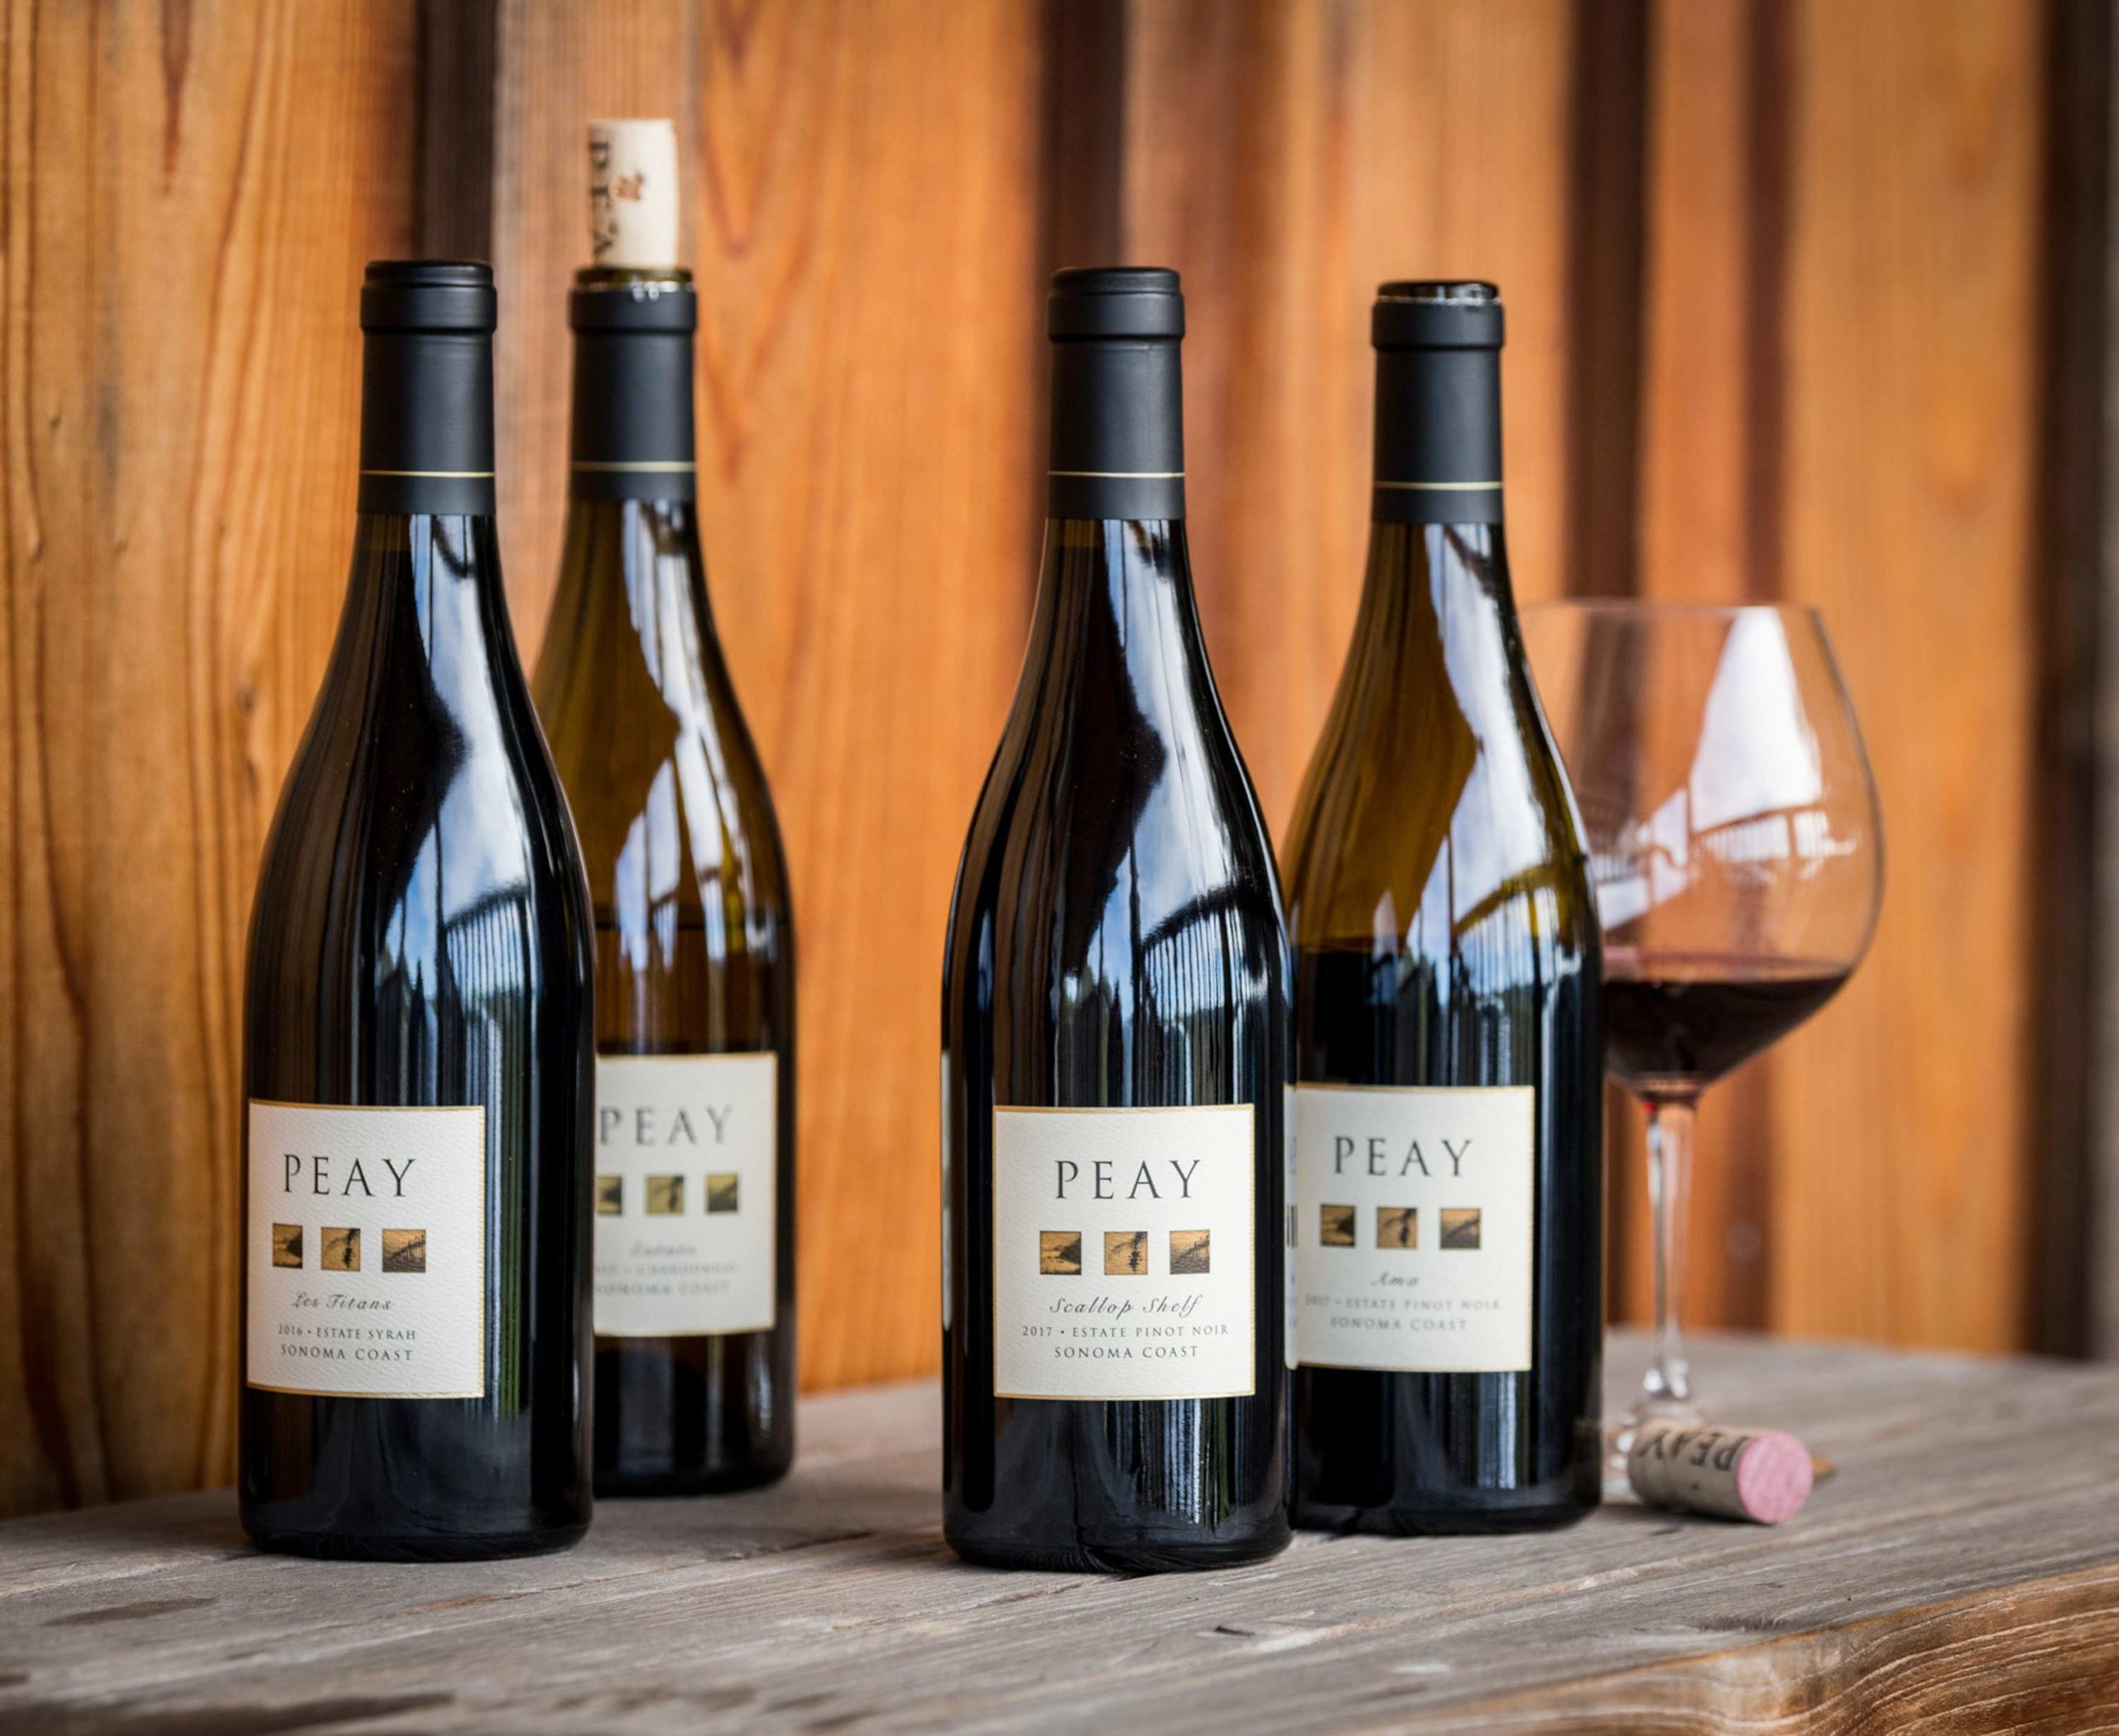 Featured image for Article: 2011 Peay Vineyards Estate Chardonnay, Sonoma Coast